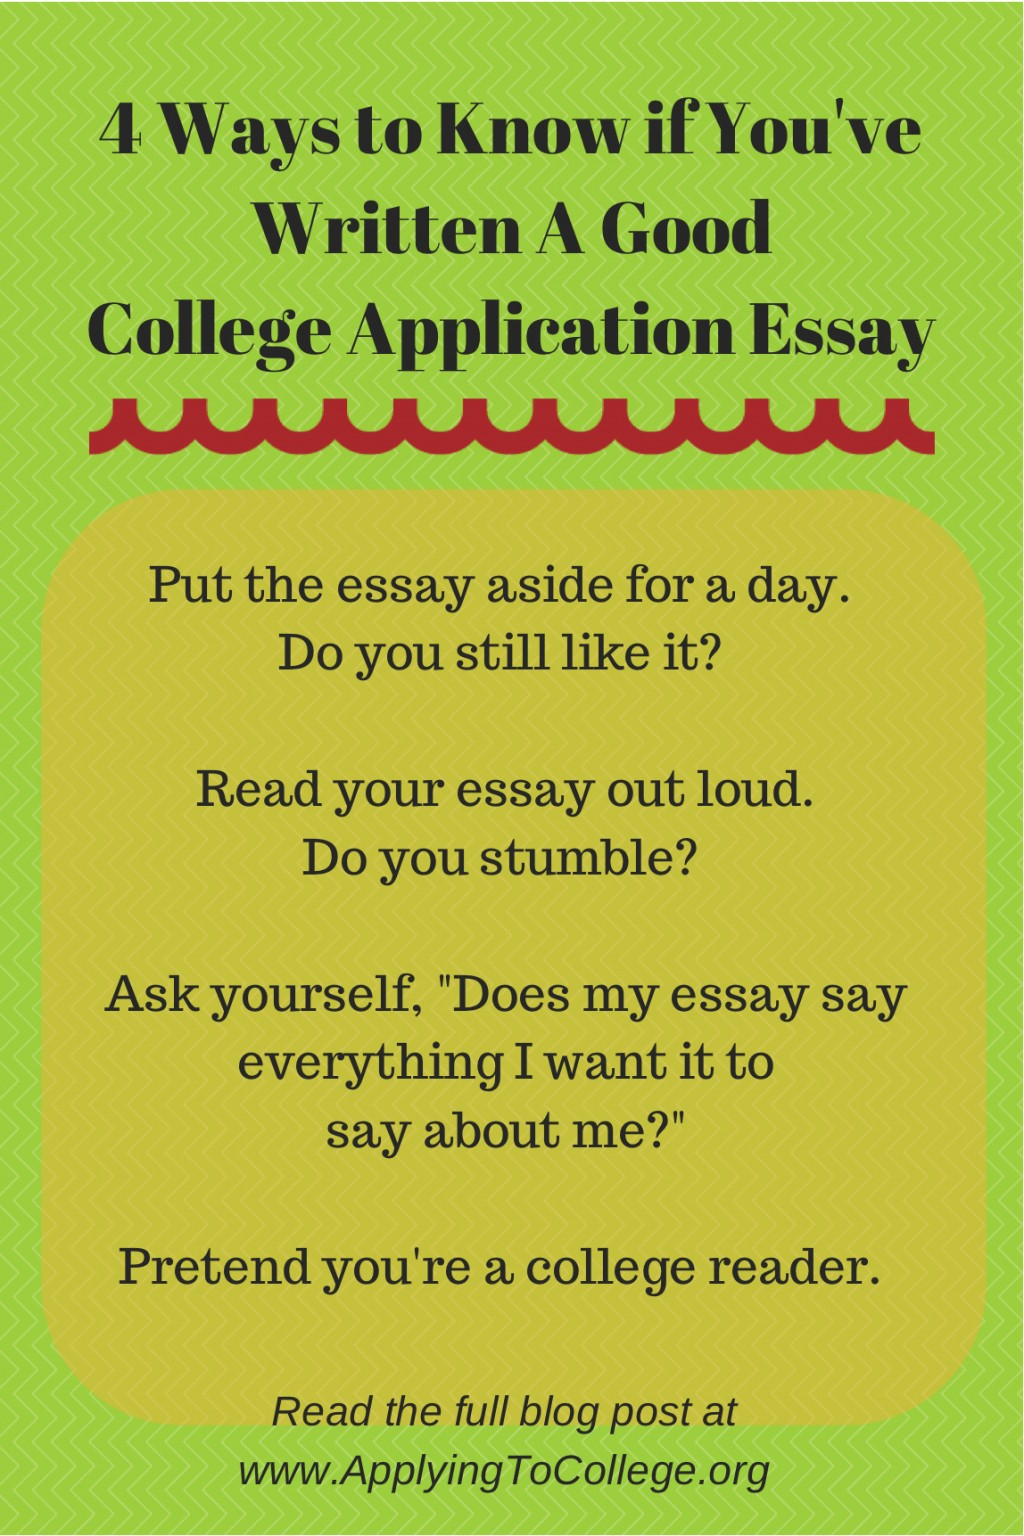 009 4ways To Know If Youve Written Good Read My Essay Unusual Reddit For Free Online Large